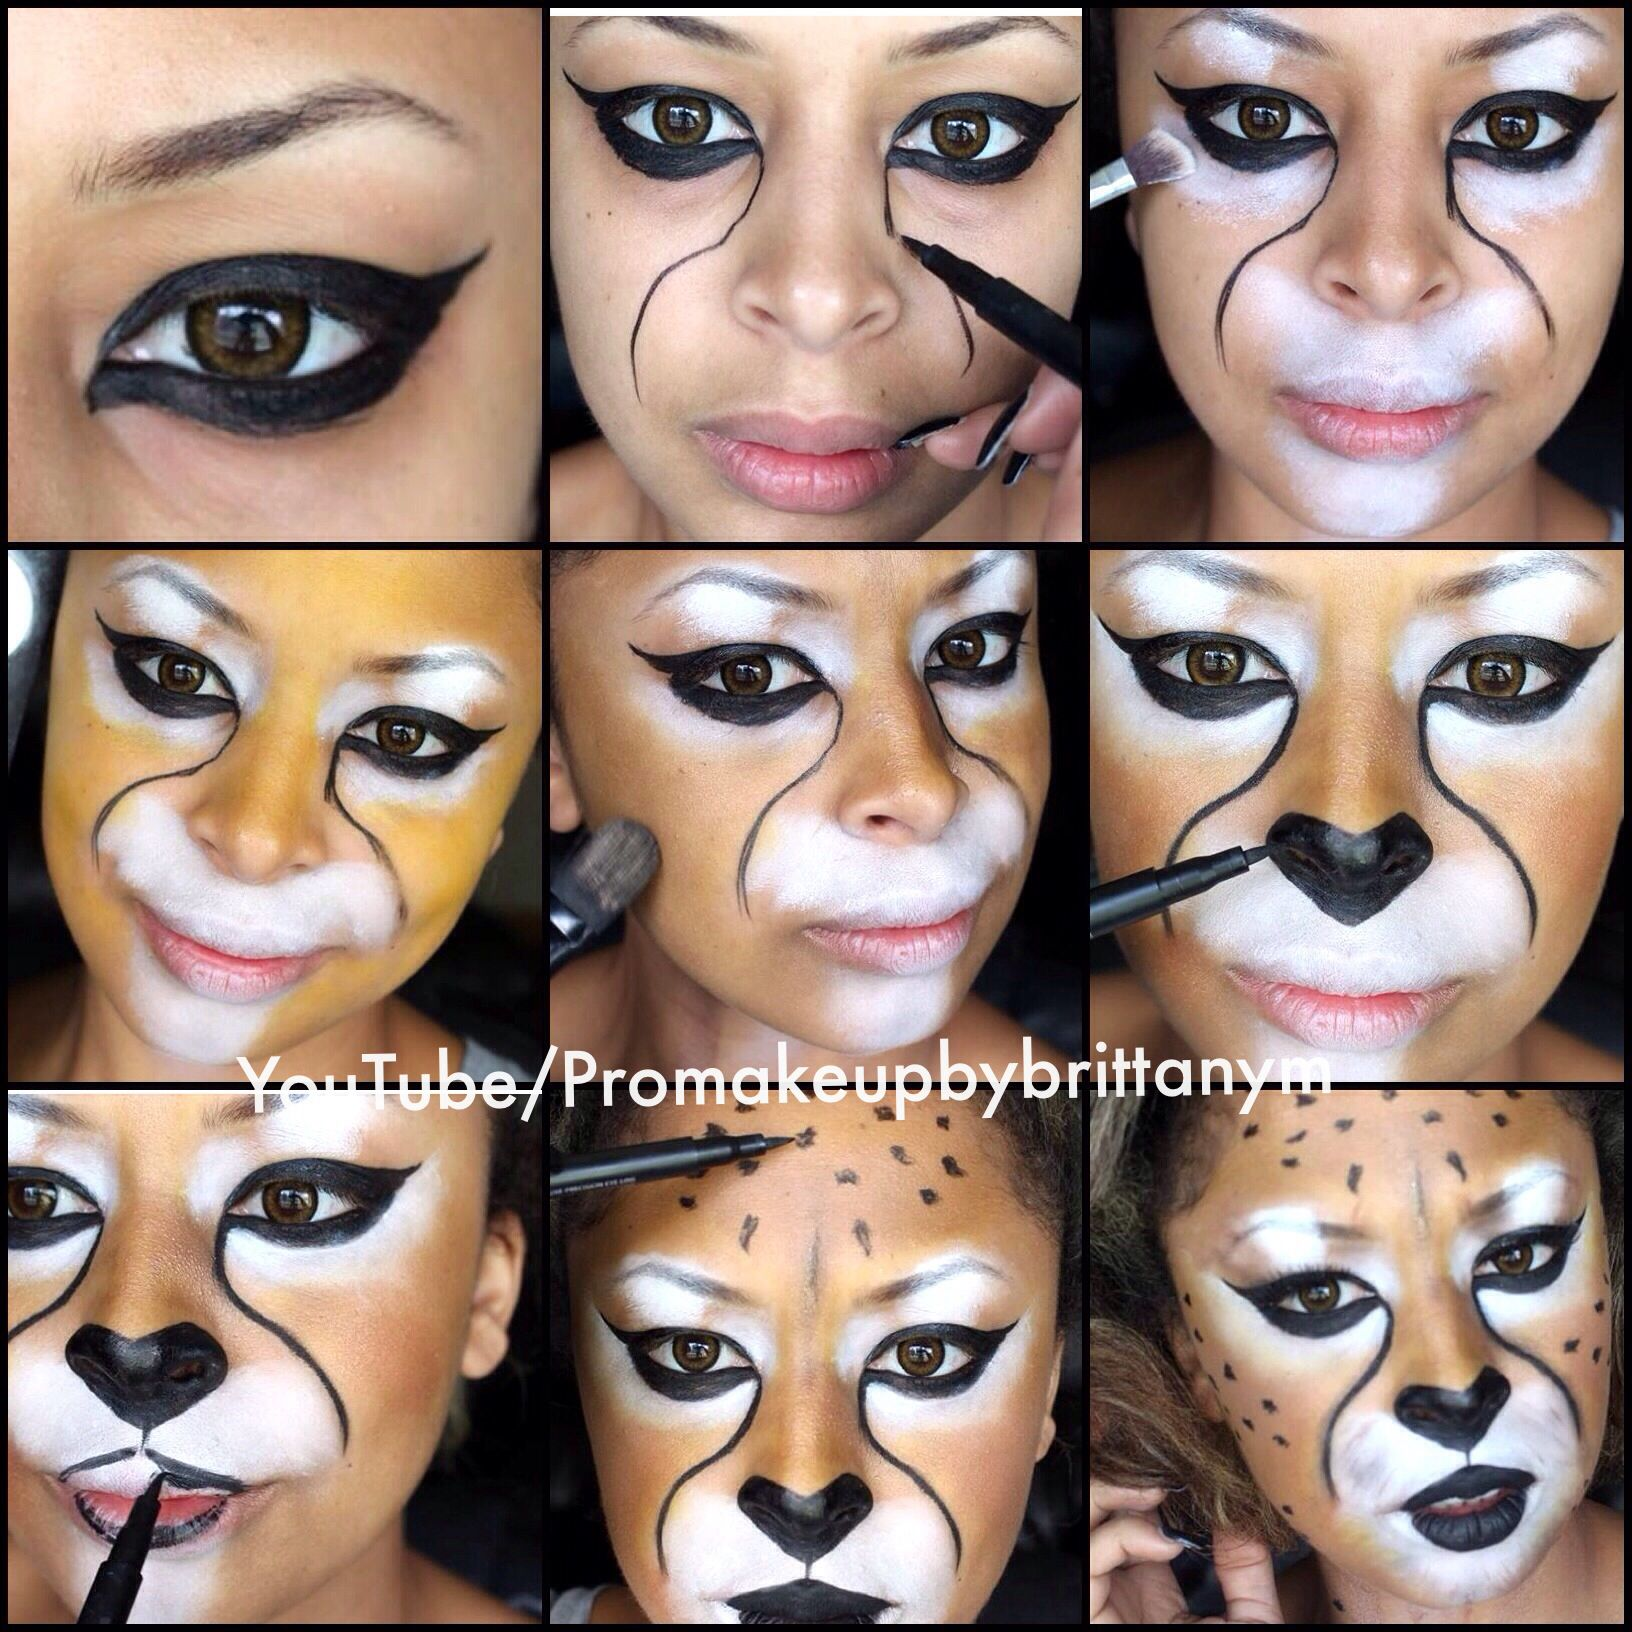 Cheetah halloween costume makeup tutorial makeup inspiration cheetah halloween costume makeup tutorial baditri Gallery